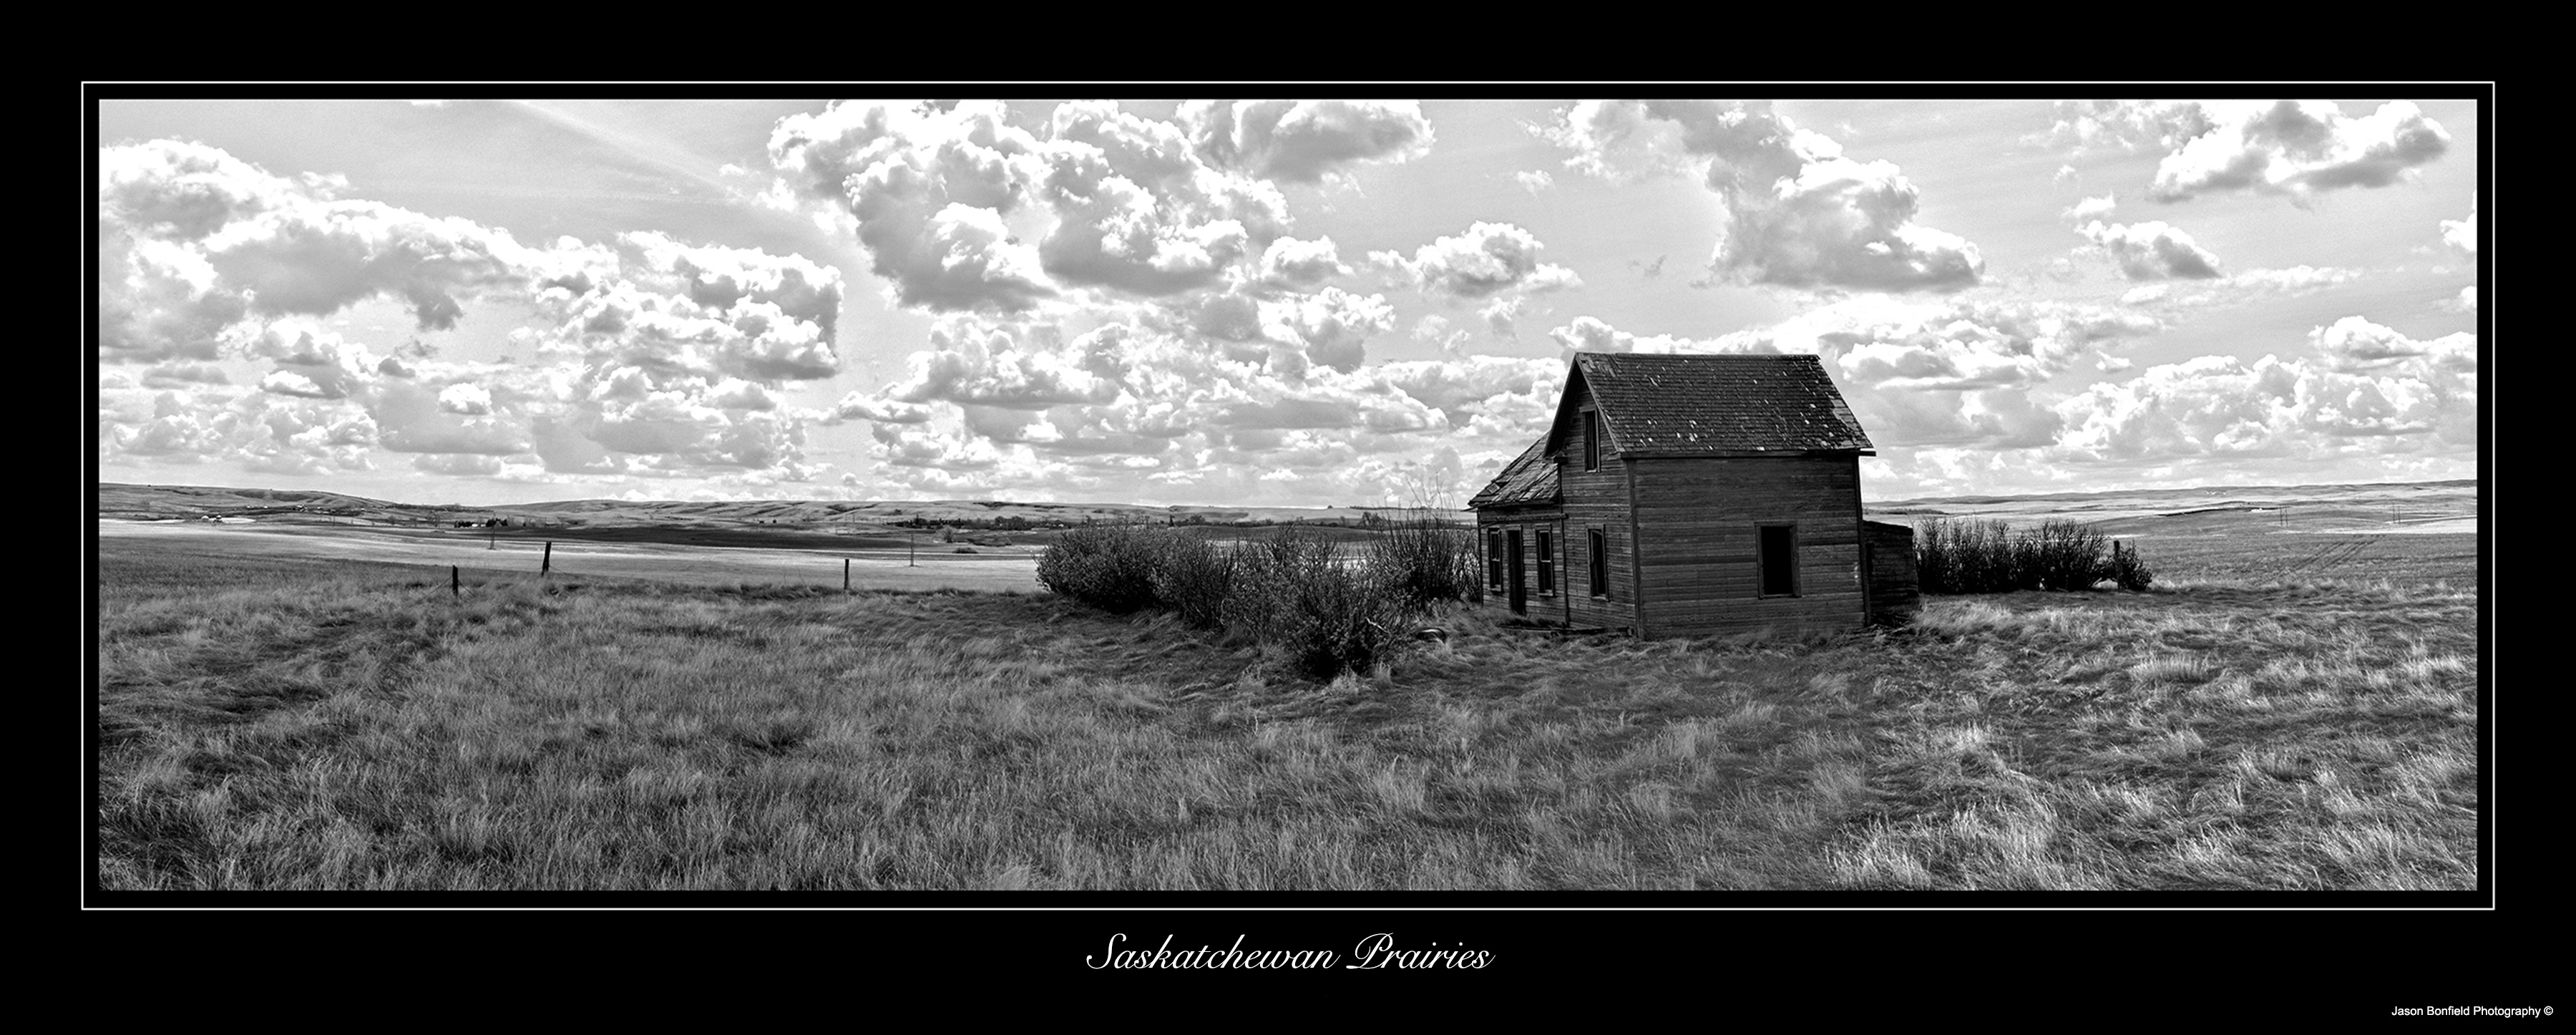 Black and white panoramic landscape picture of an old derelict farmhouse in the Saskatchewan prairies with clouds in the sky in Canada.